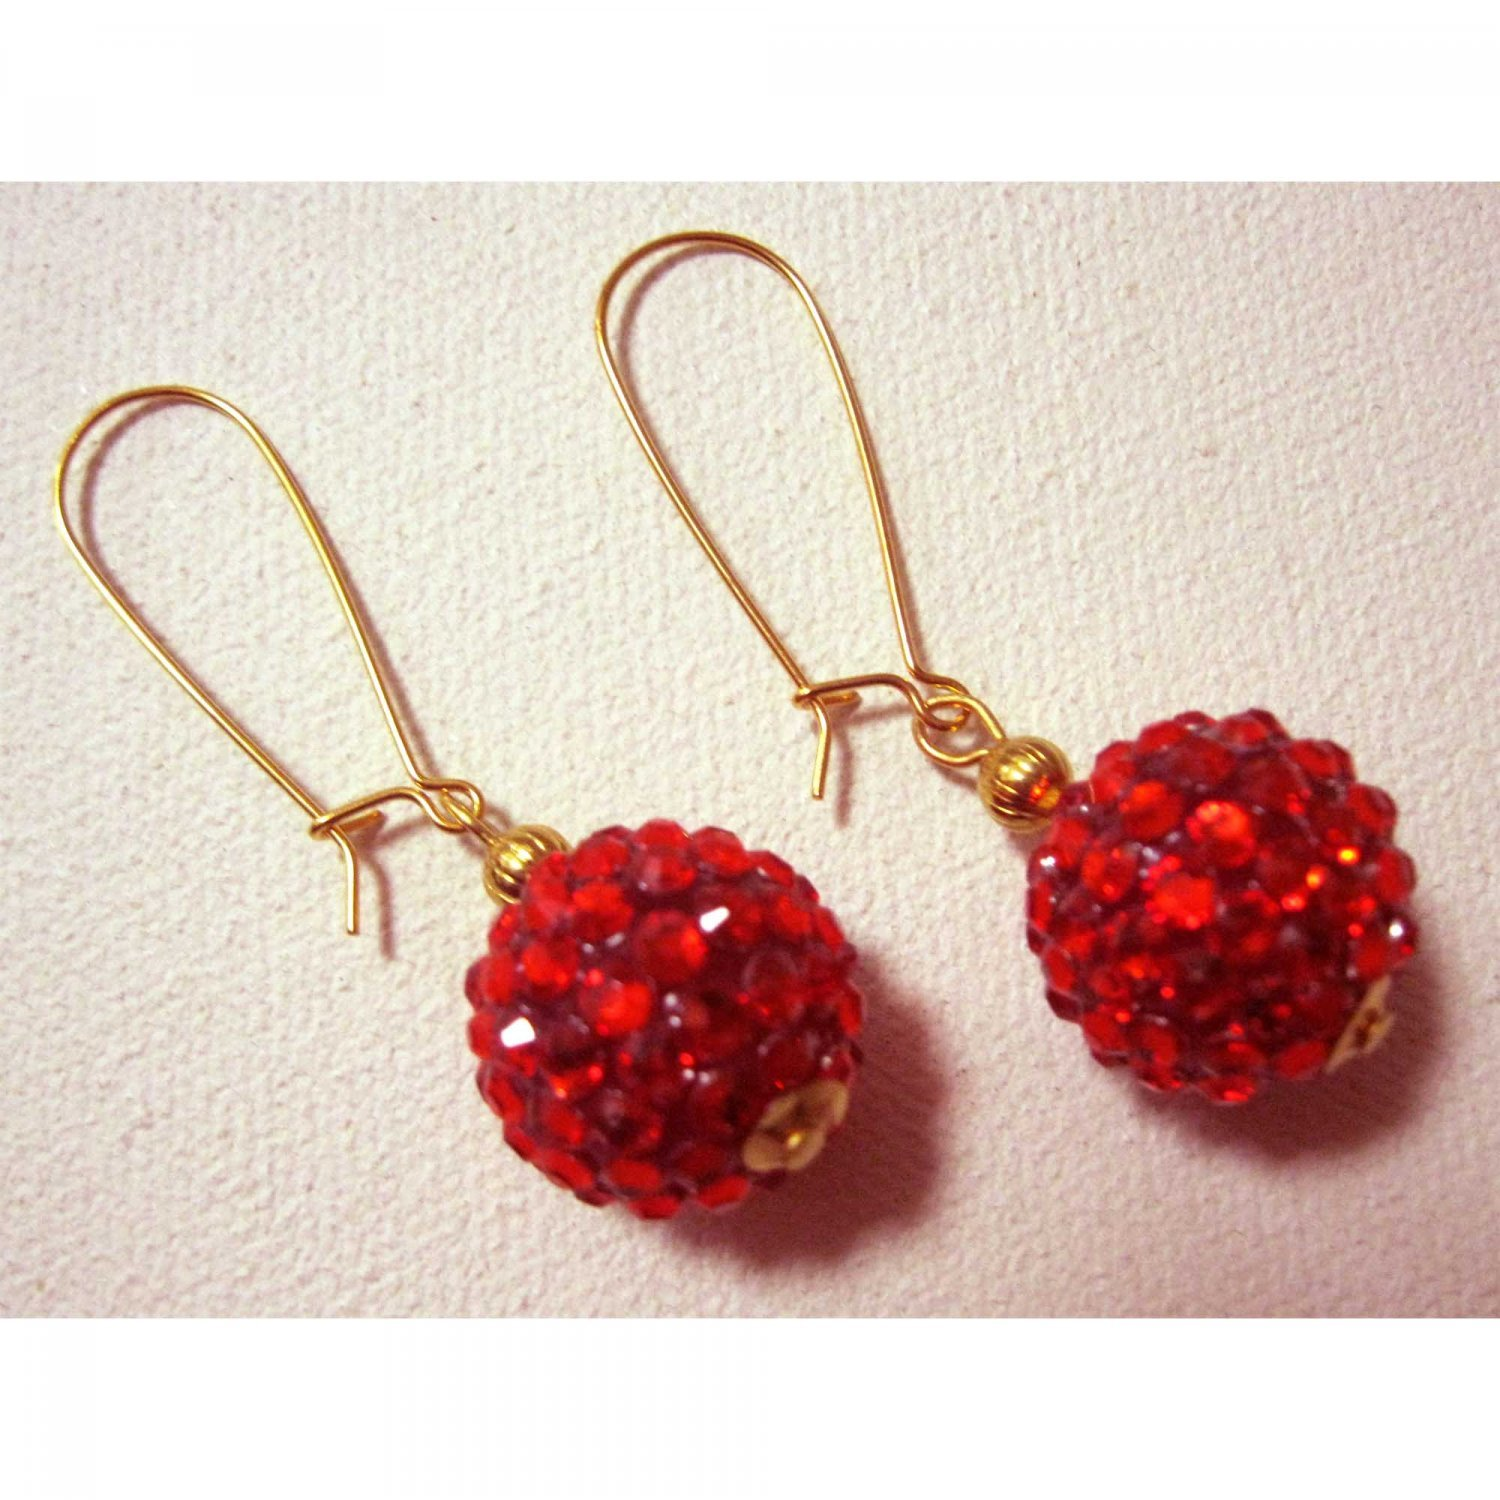 Red hot fashion earrings with crystals, Jewelry, red crystals fashion earrings, Chic